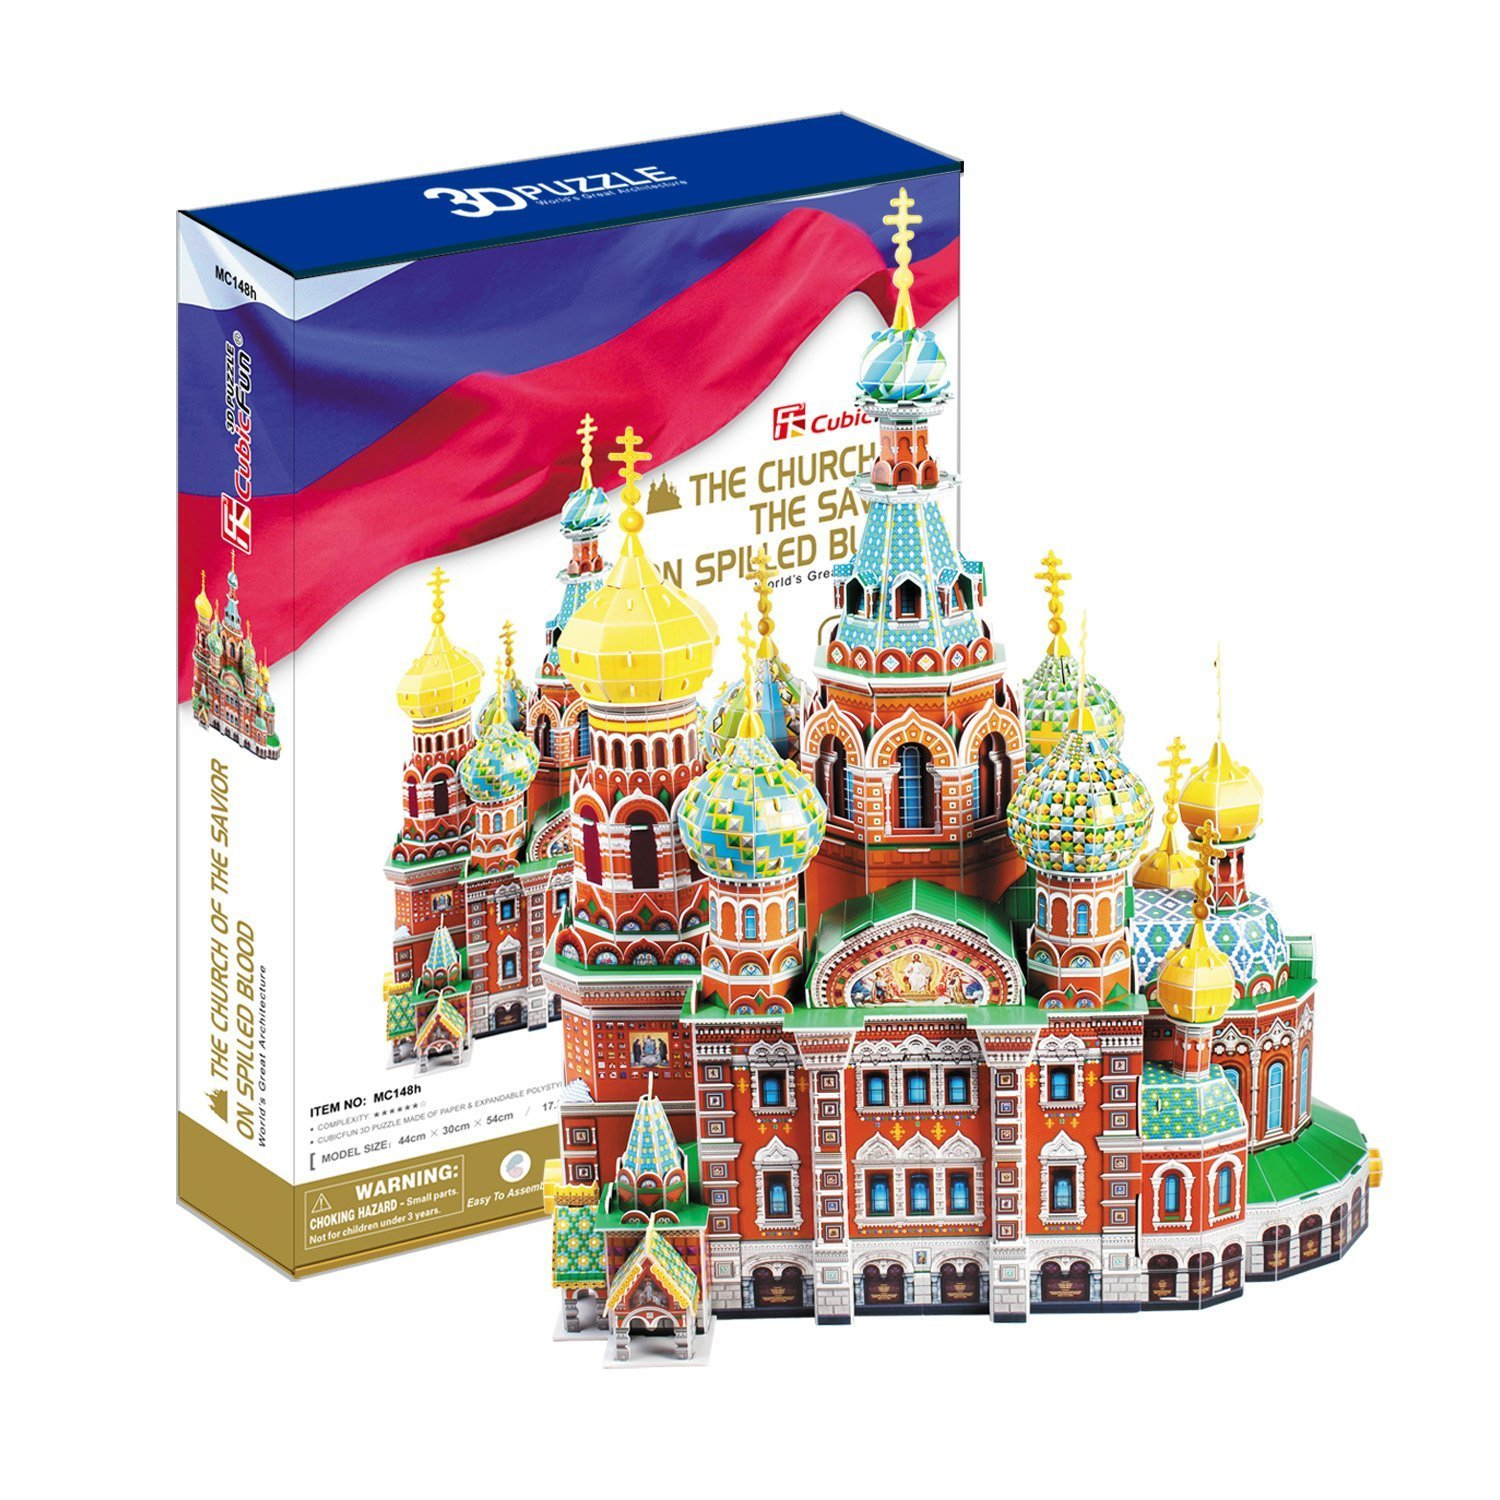 CubicFun 3D Puzzle 233 Pieces: The Church of the Savior on Spilled Blood Cubic Fun